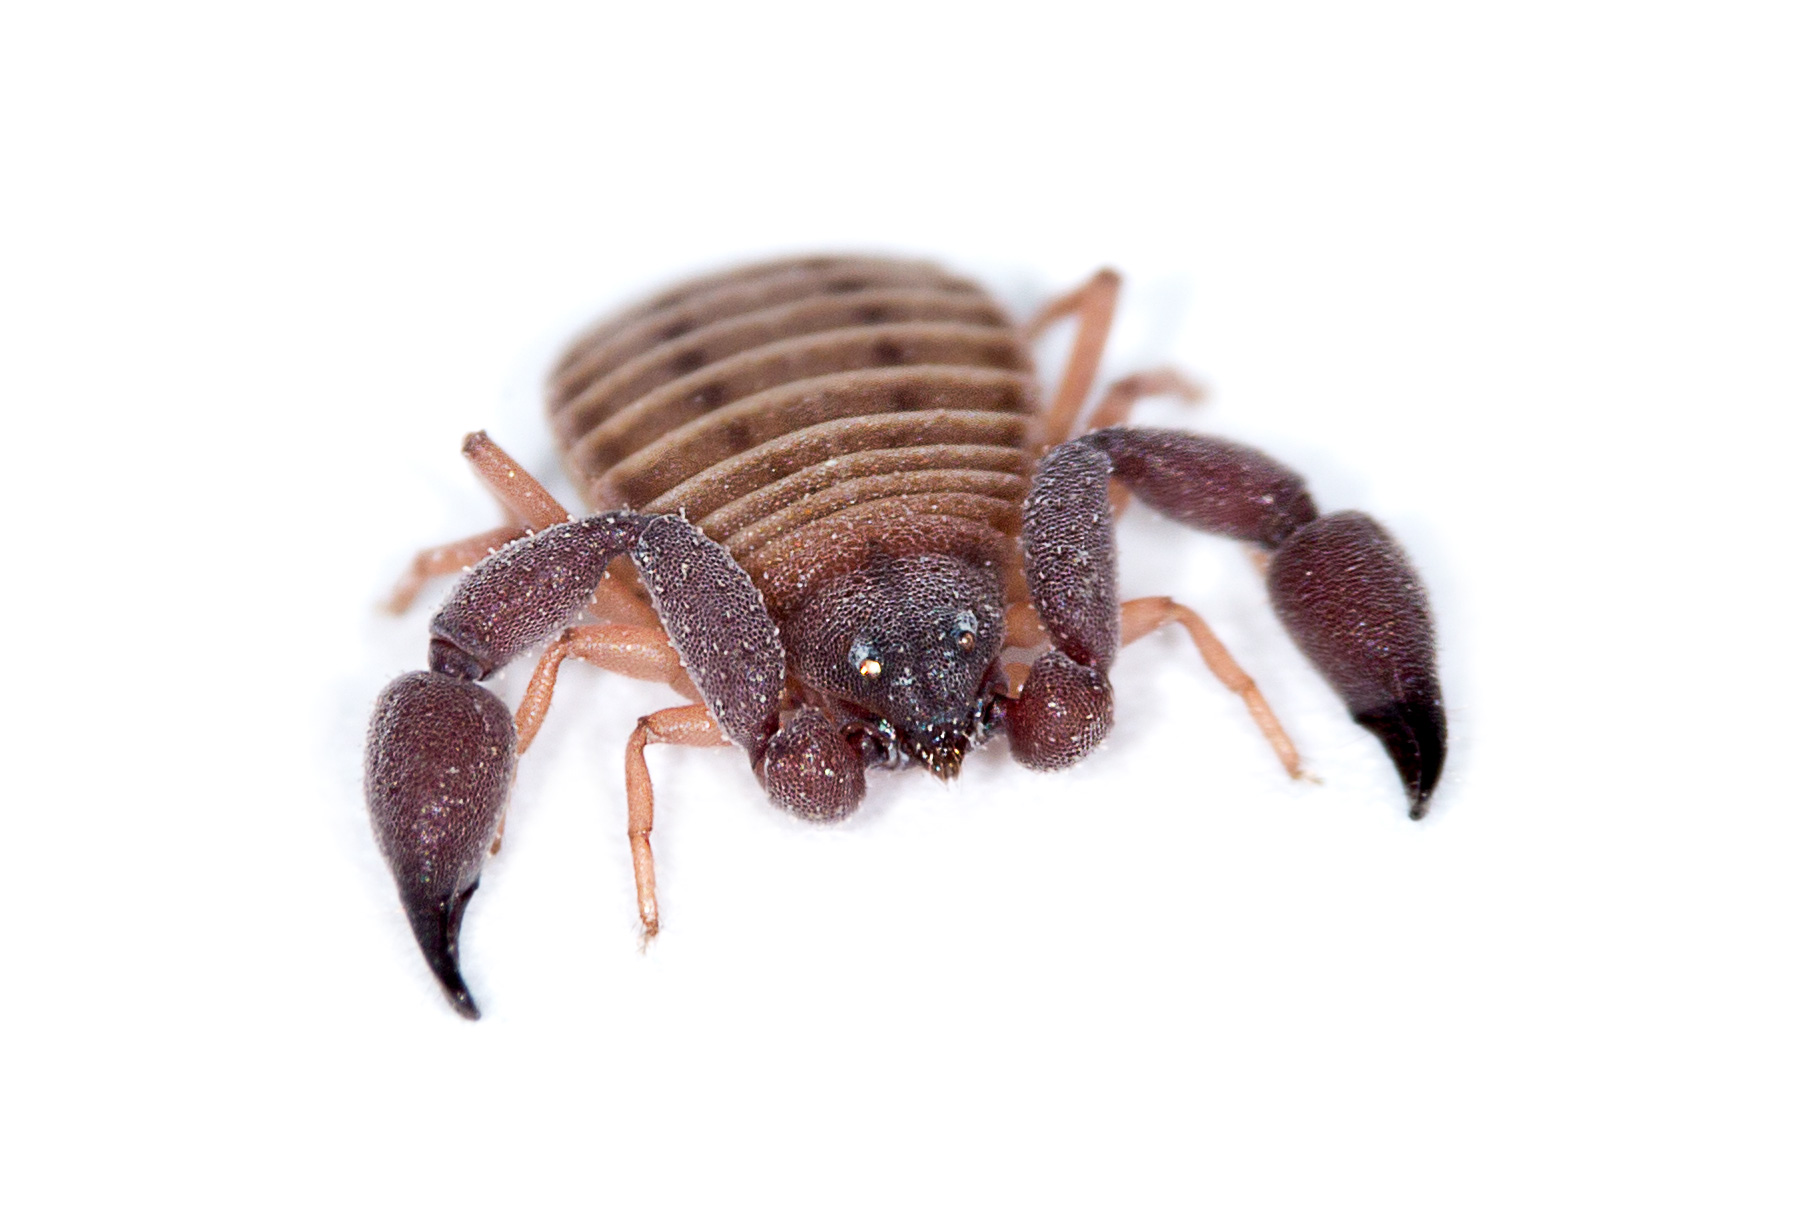 Pseudoscorpion found under a rock in the Namib Sand Sea.